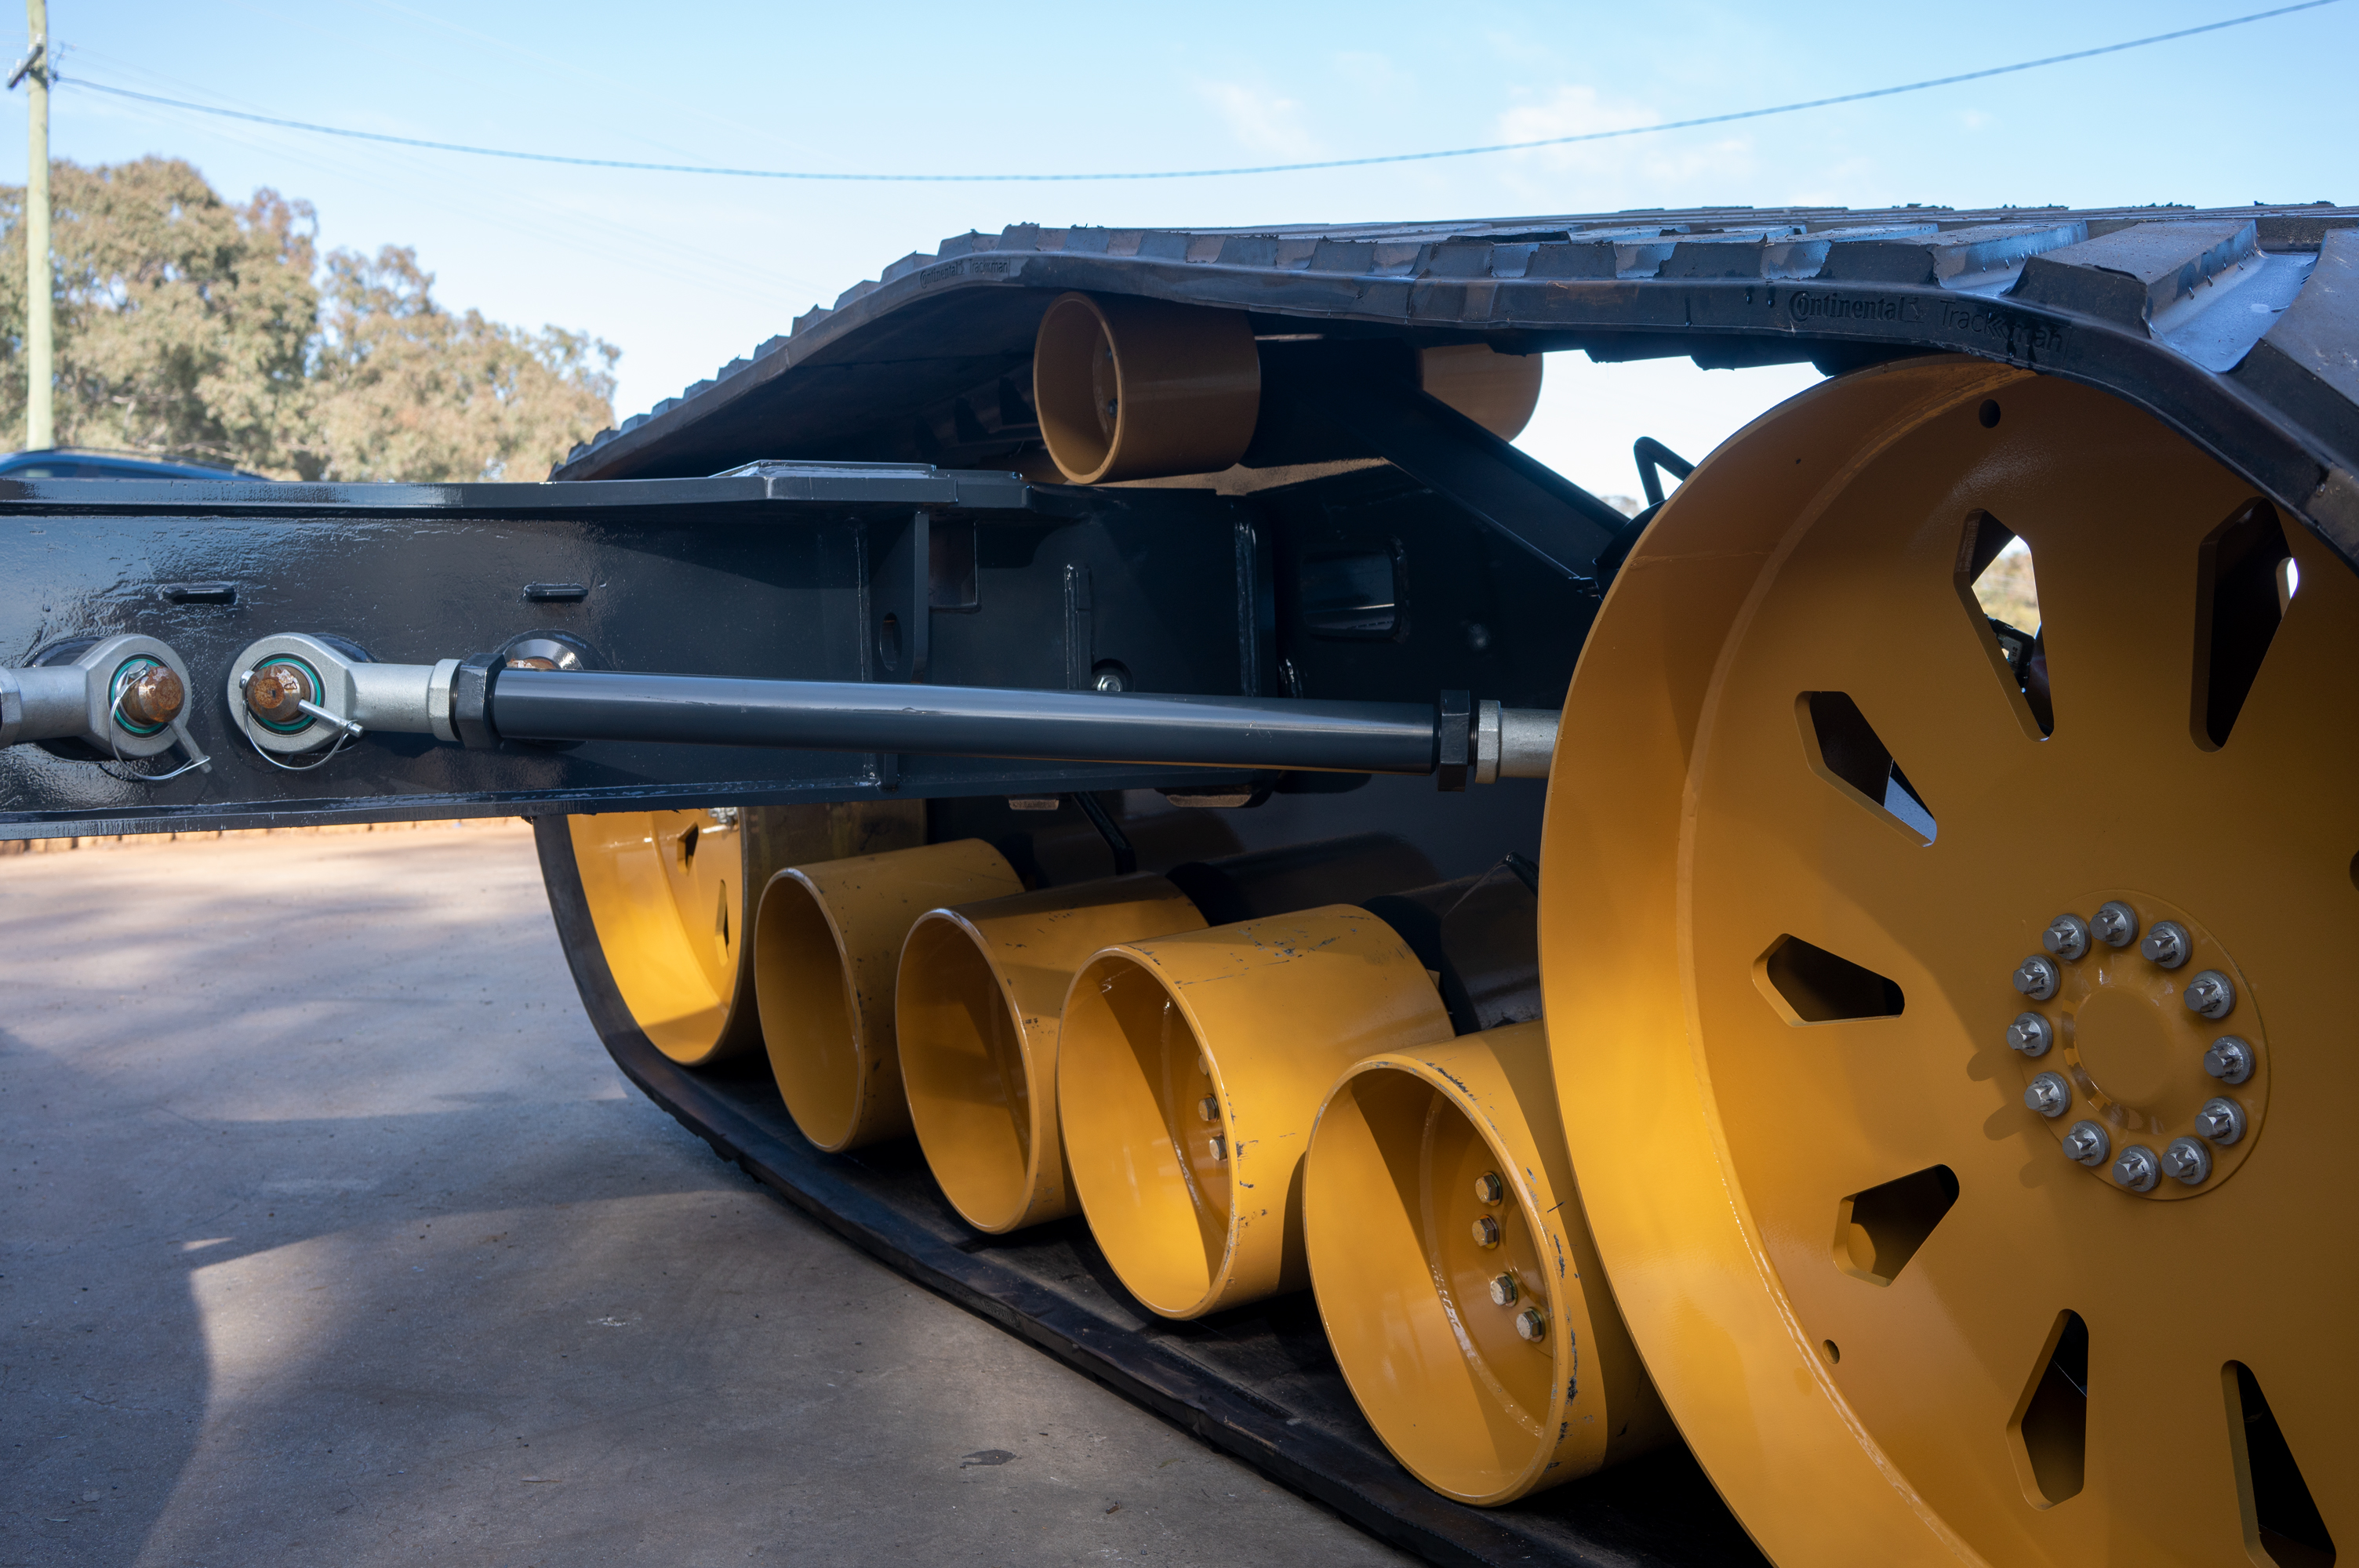 rear of track undercarriage chaser bin